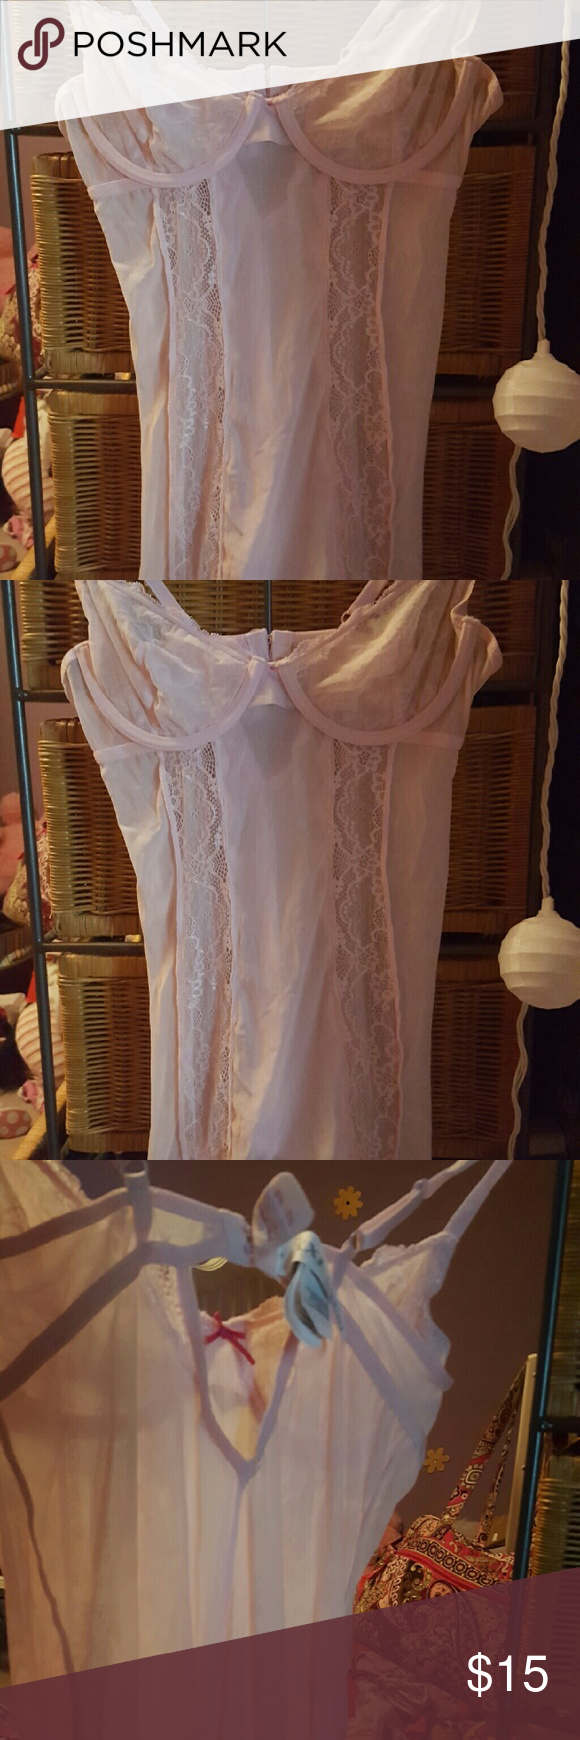 Nwot Pink lingerie Baby pink lingerie apparel. See through on tummies area Forever 21 Intimates & Sleepwear Chemises & Slips